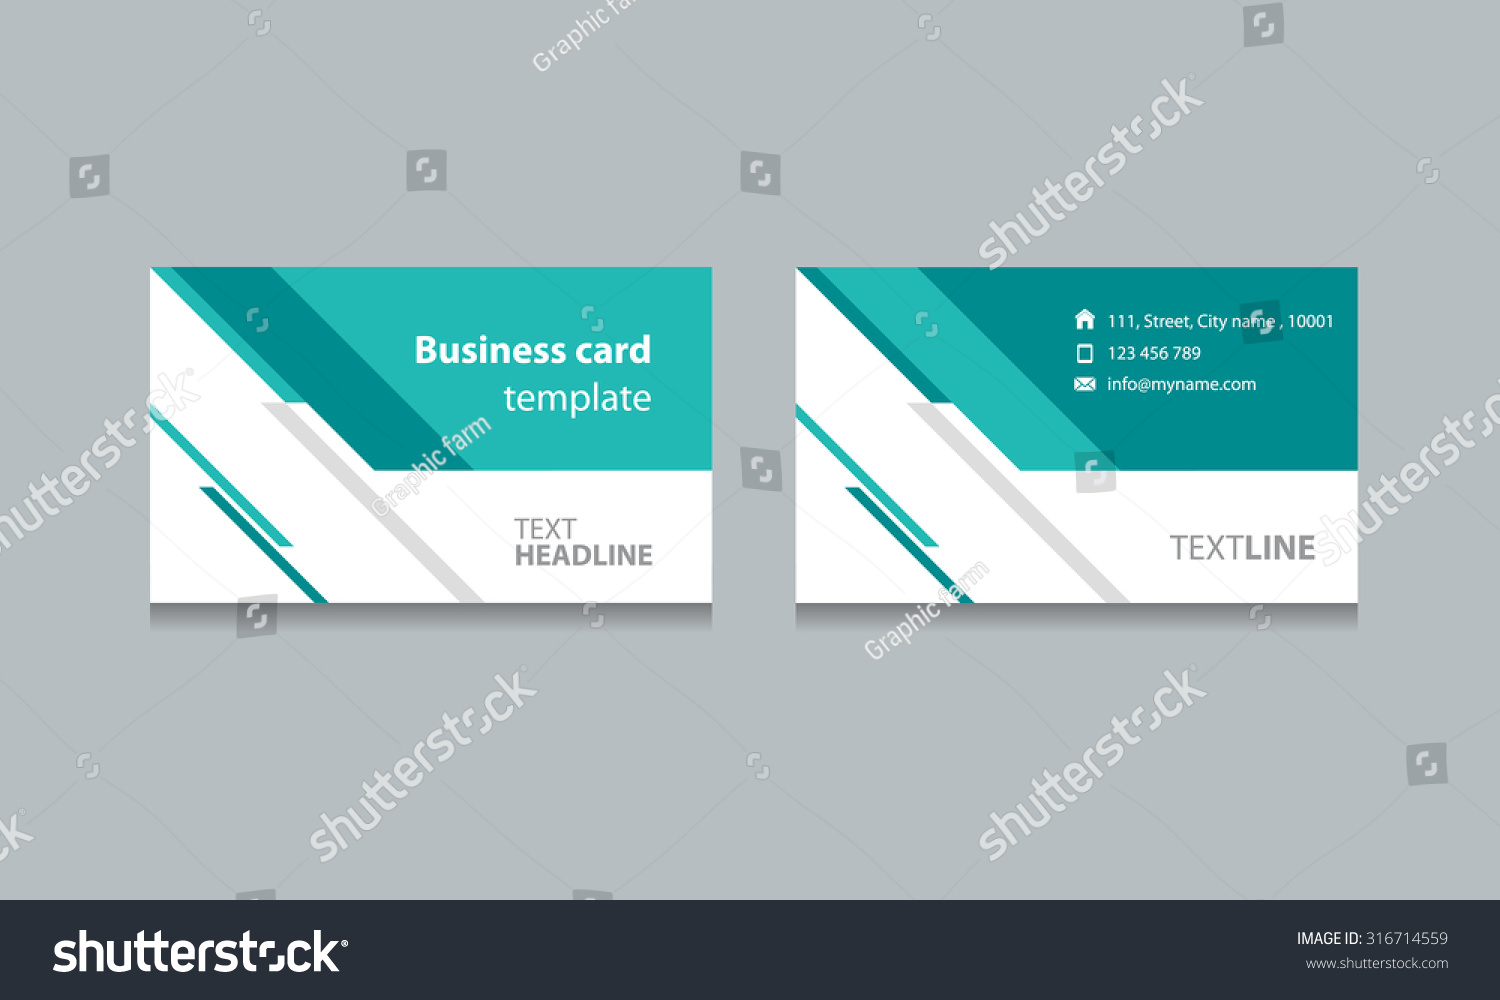 Abstract Business Card Template Design Backgrounds Stock Vector ...